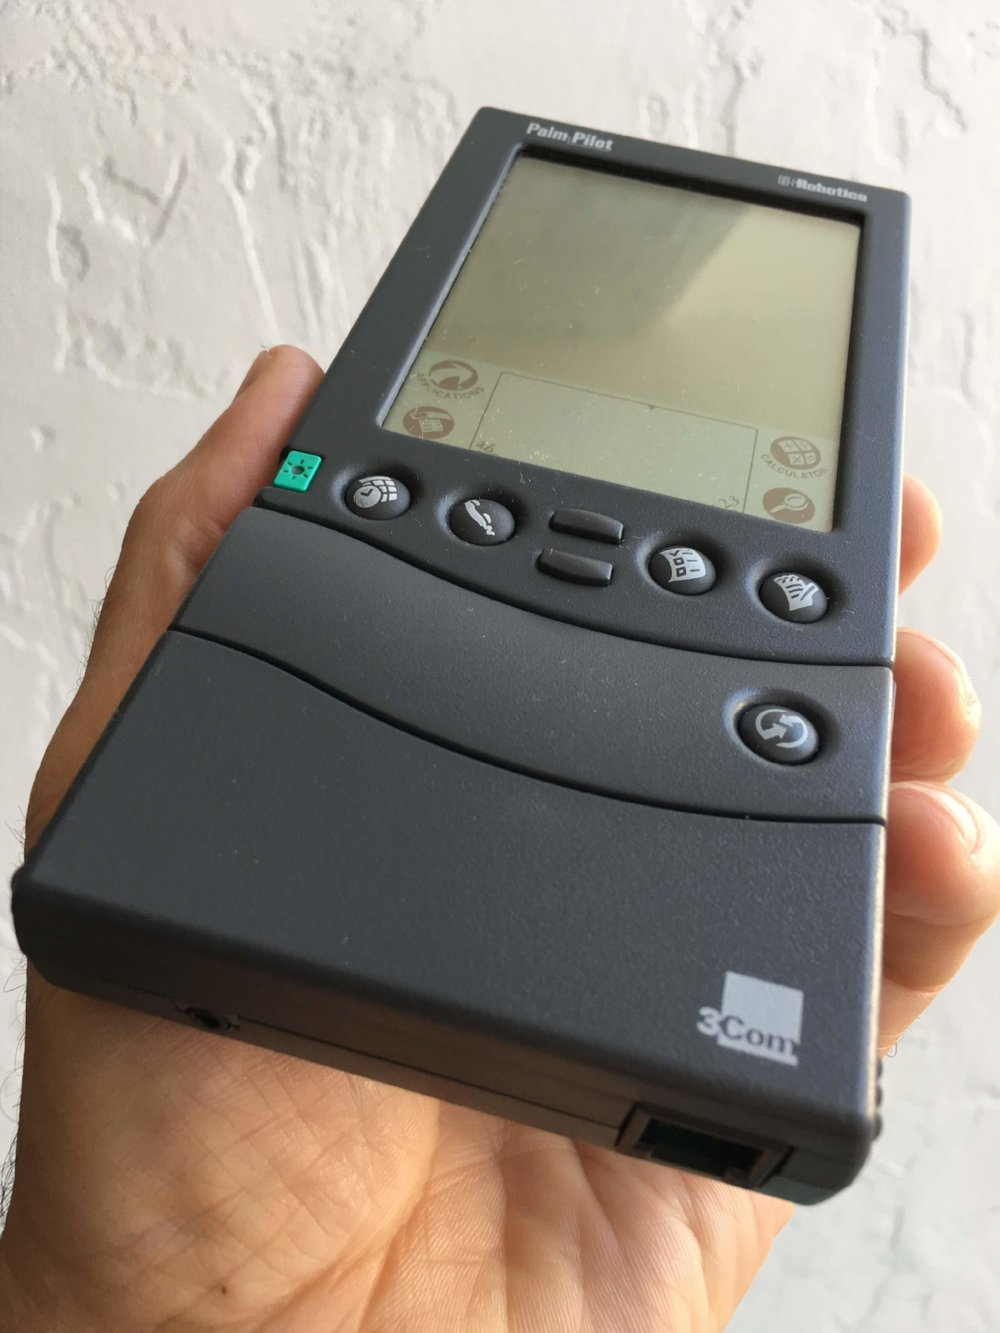 The original Palm Pilot with a modem.